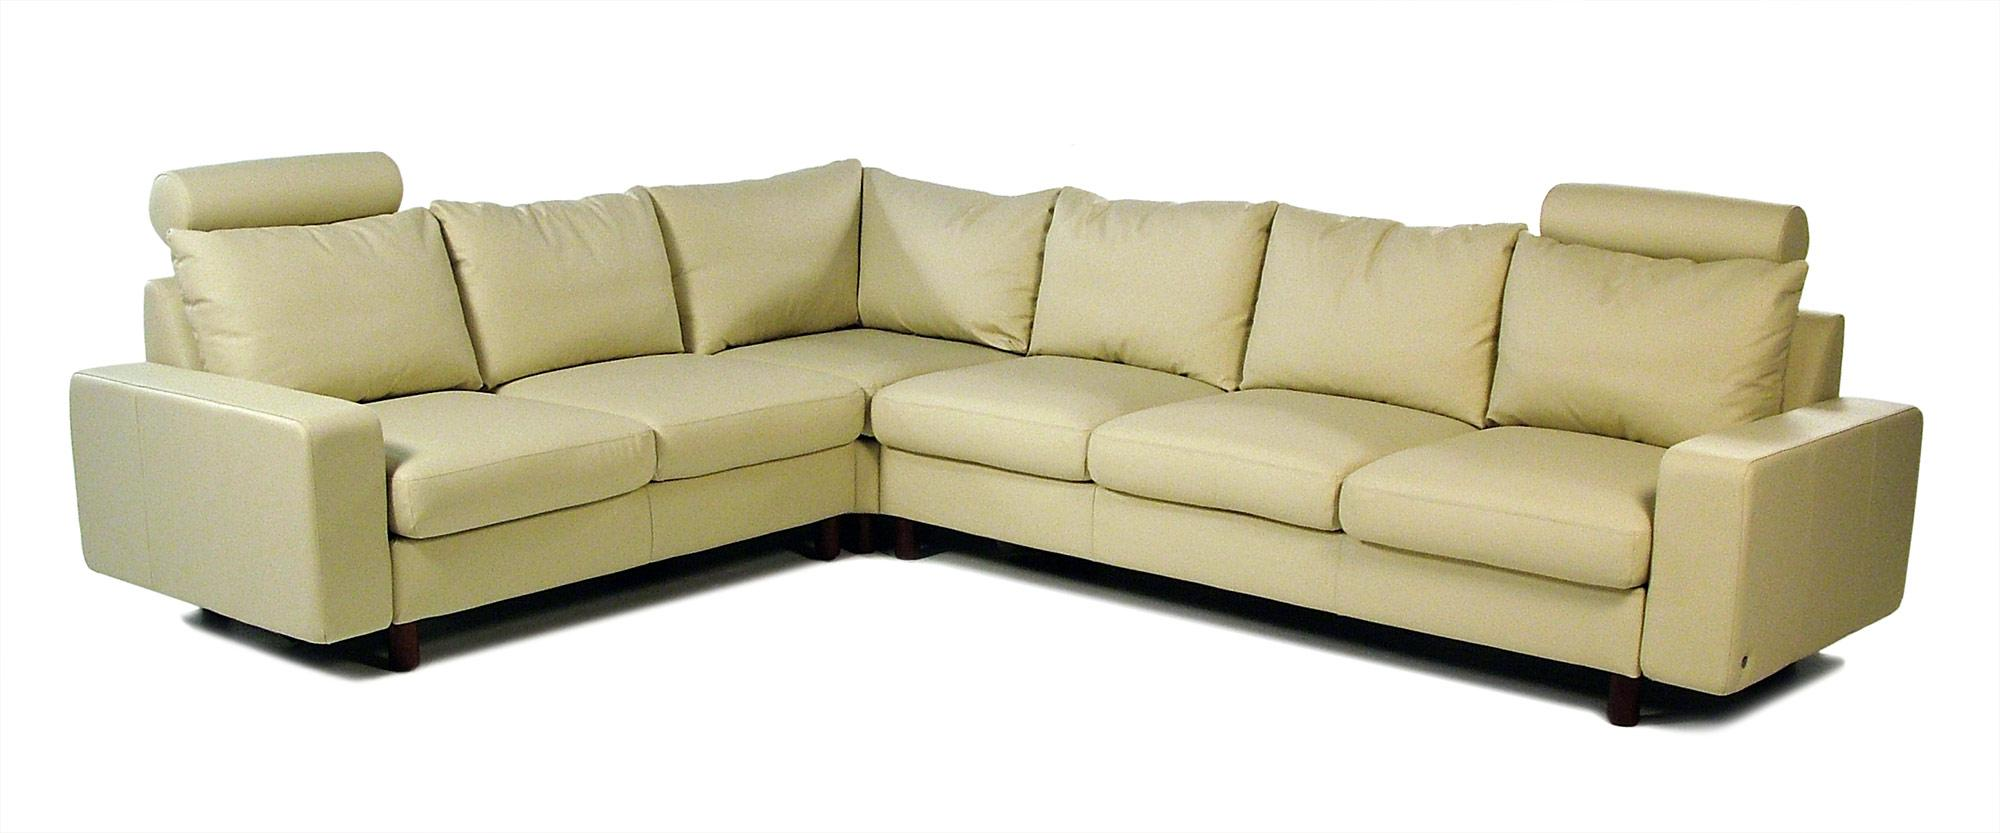 Contemporary Reclining Leather Sectional